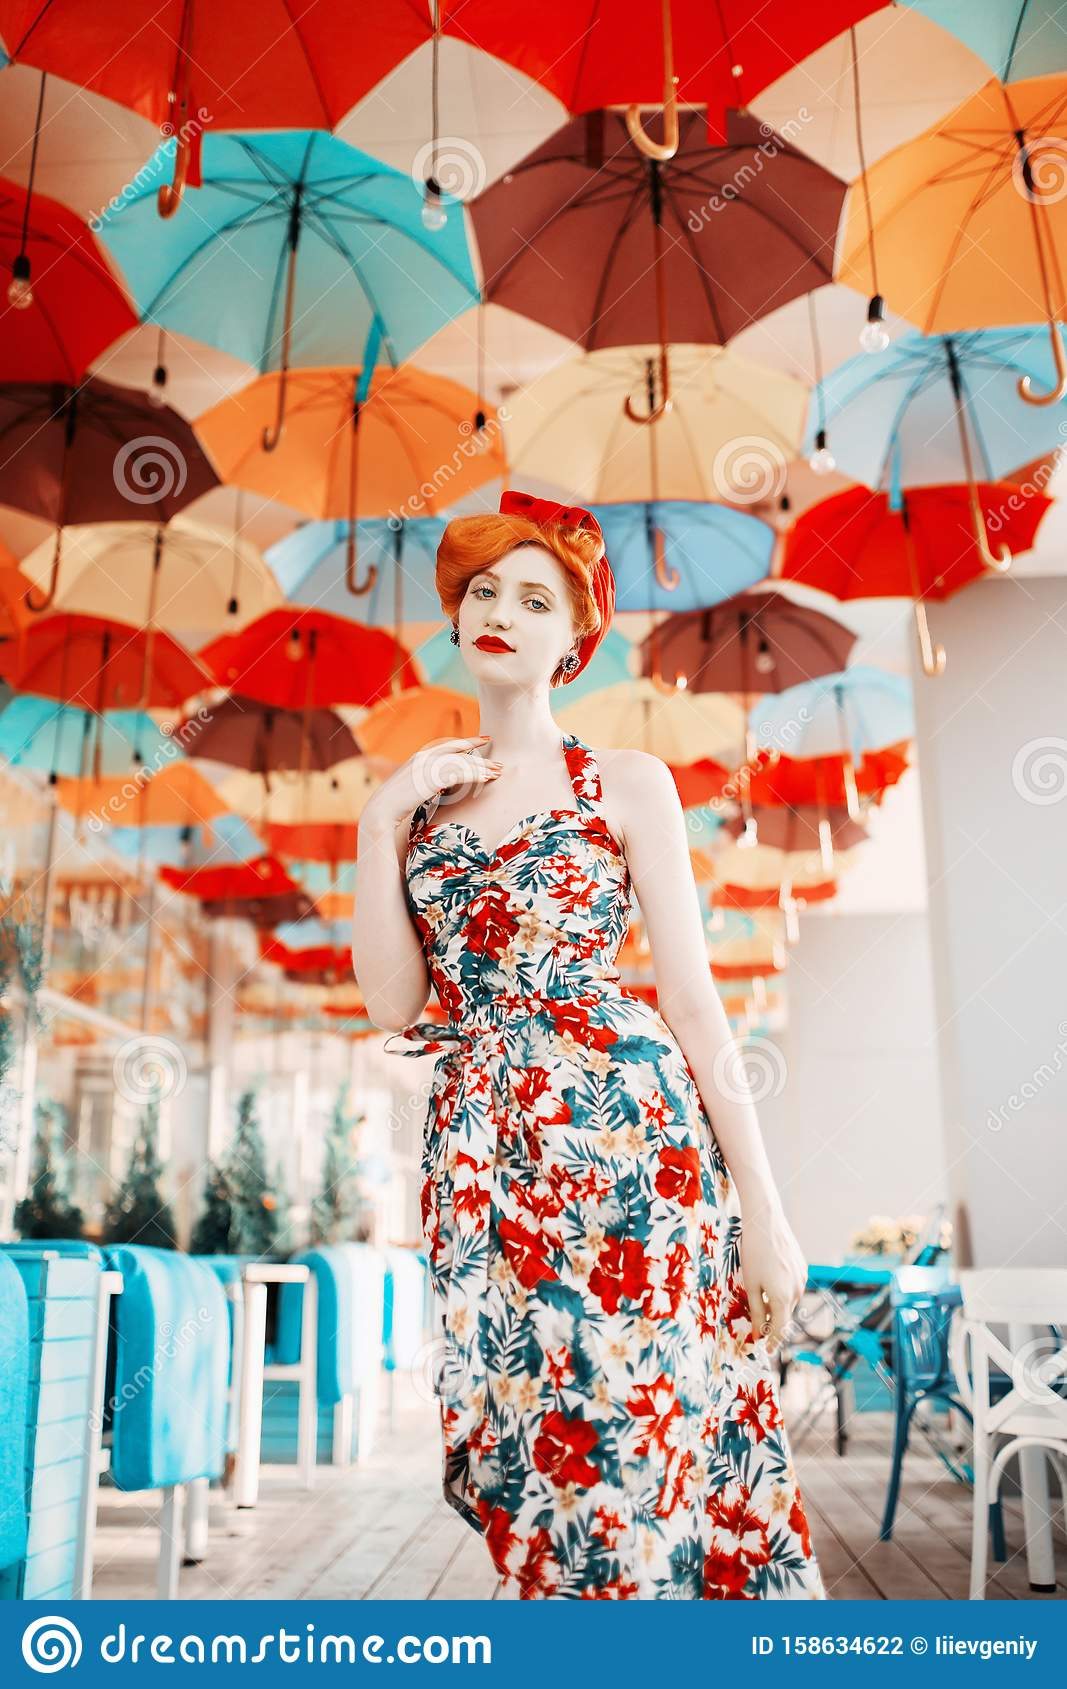 Fabulous retro girl with hairstyle in flower dress on background of colored umbrellas. A beautiful vintage woman with pale skin